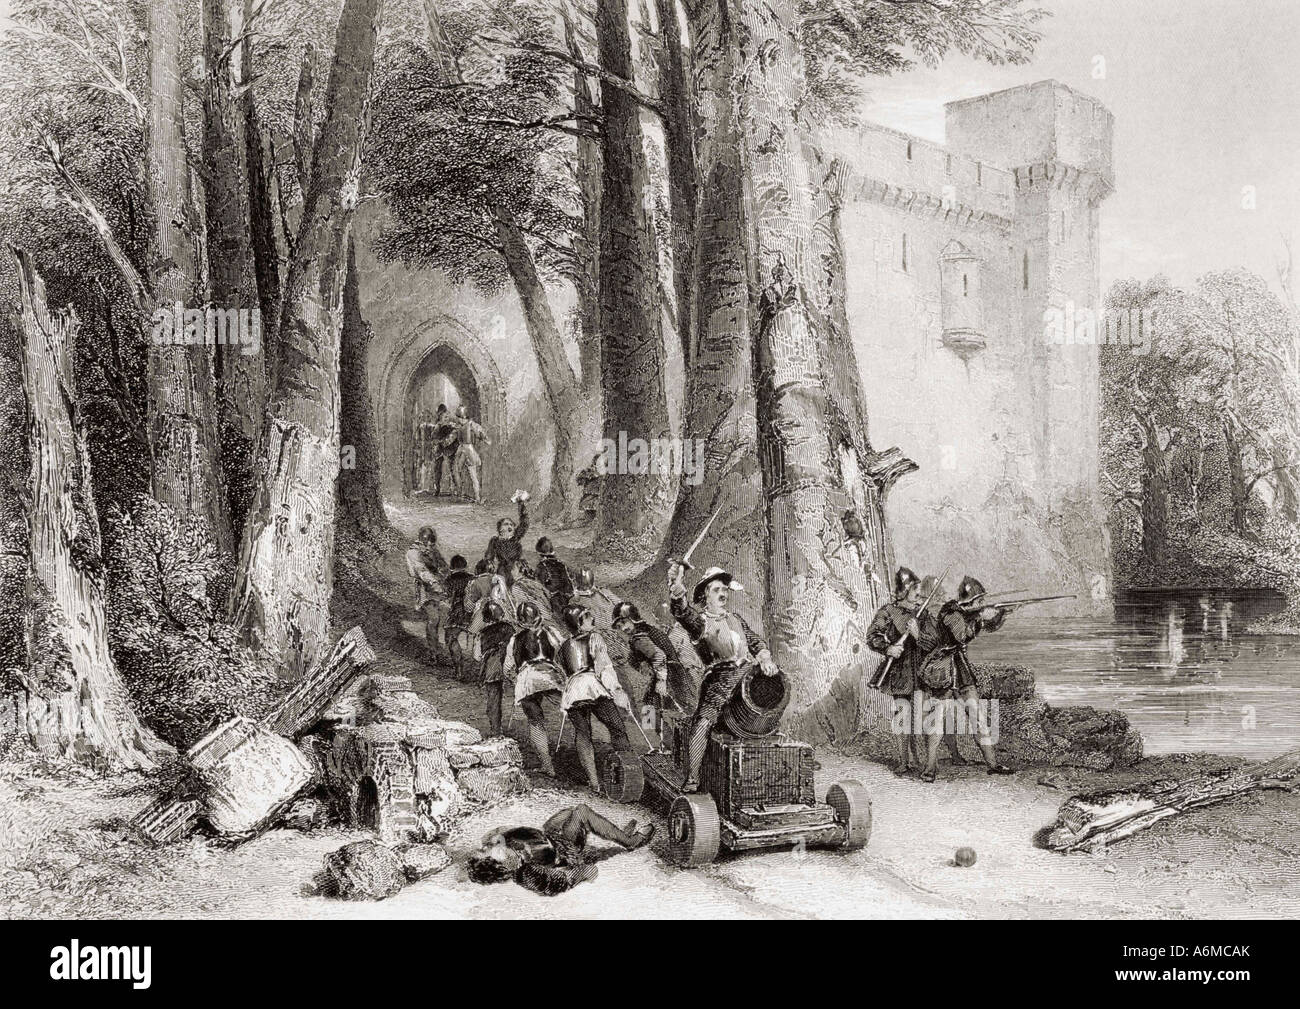 The Siege of Lathom House, Ormskirk, Lancashire in 1644 during English Civil War - Stock Image